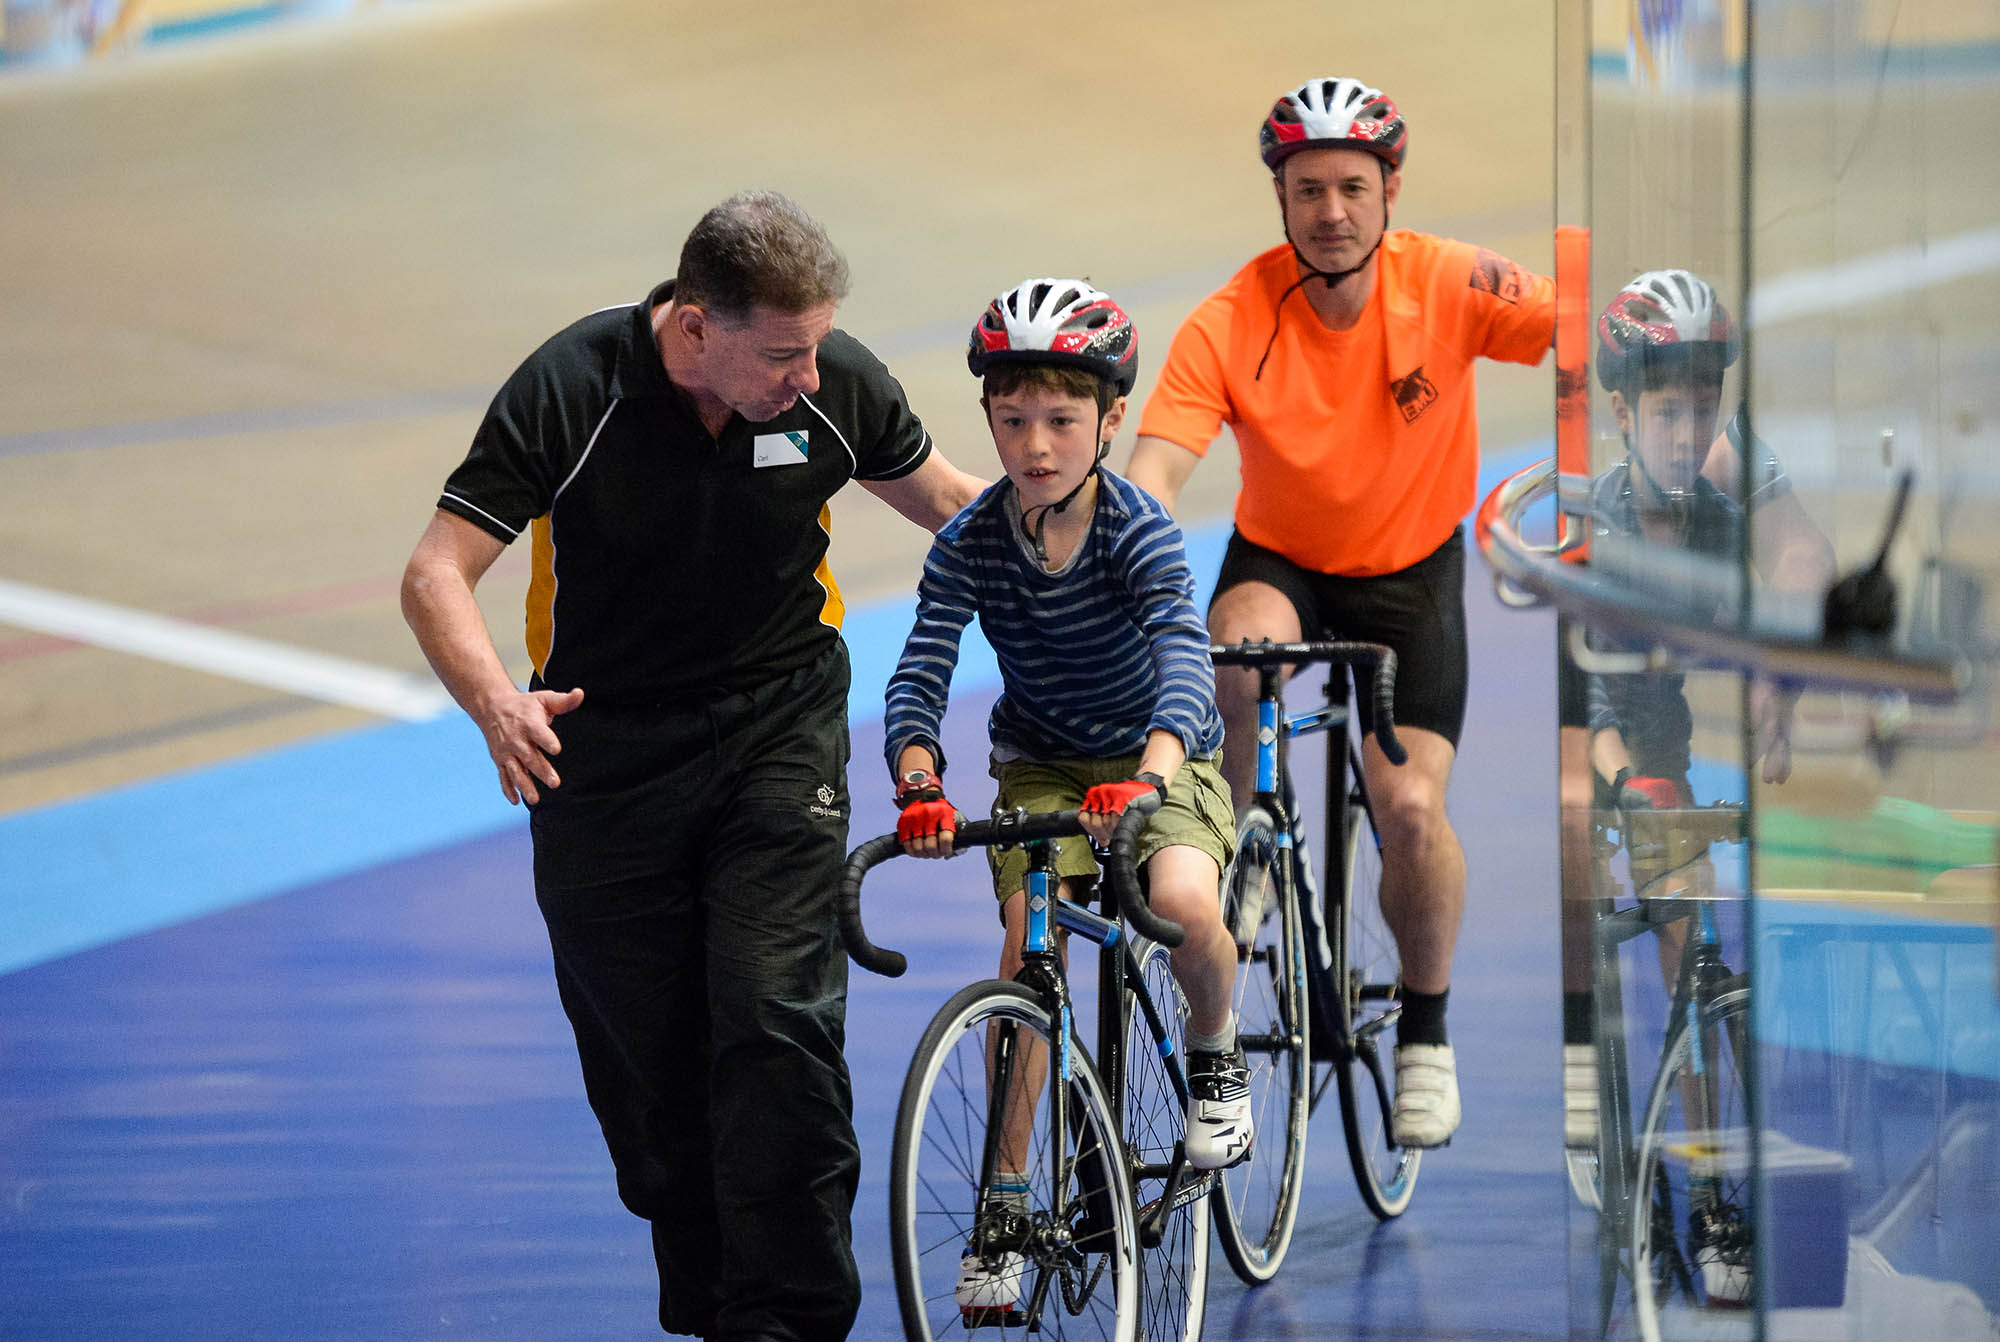 boy on bike being supported by coach indoors cycling